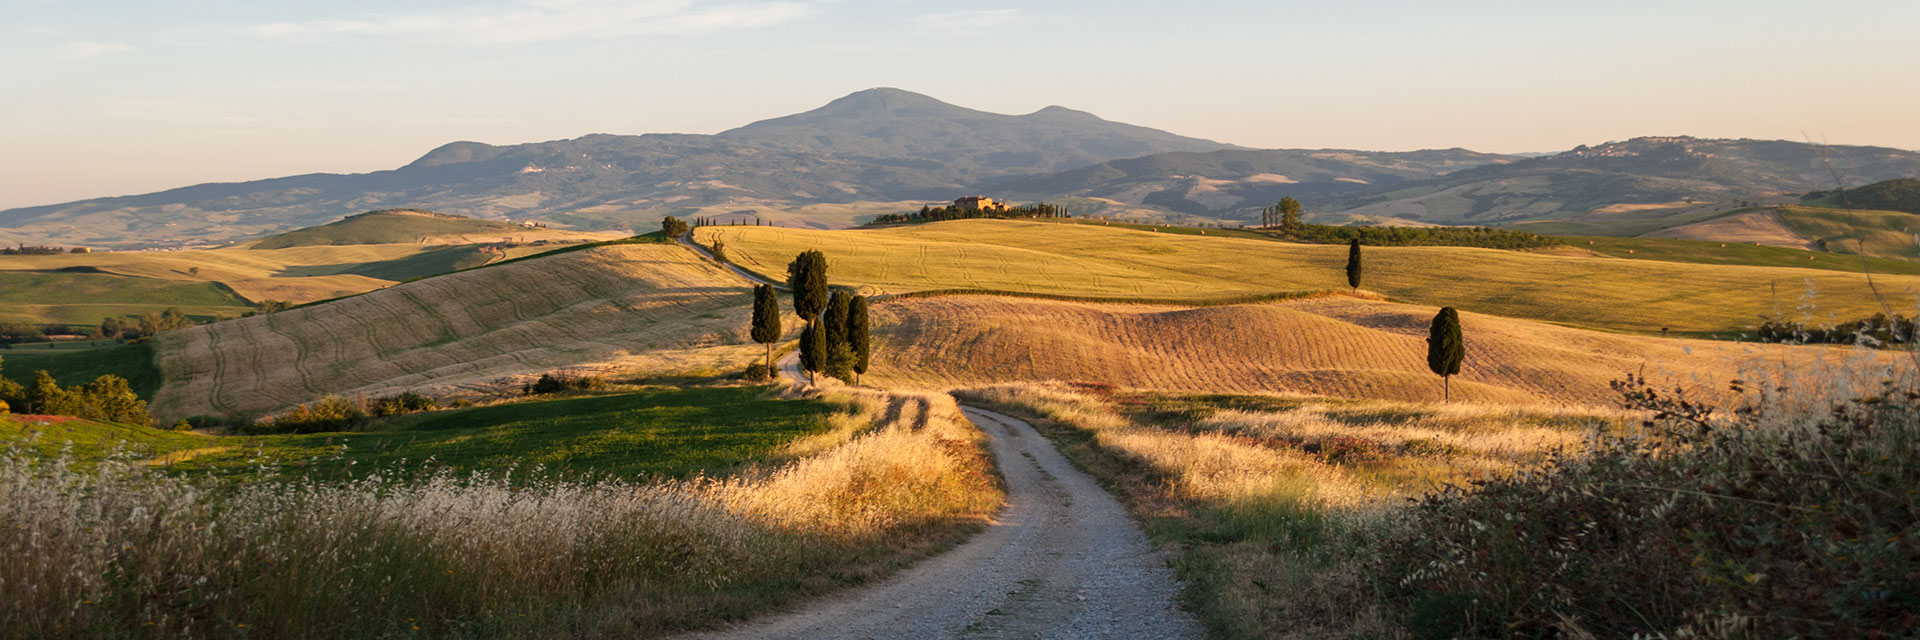 Associazione Giove's Way Blog - Montalcino, Val d'Orcia